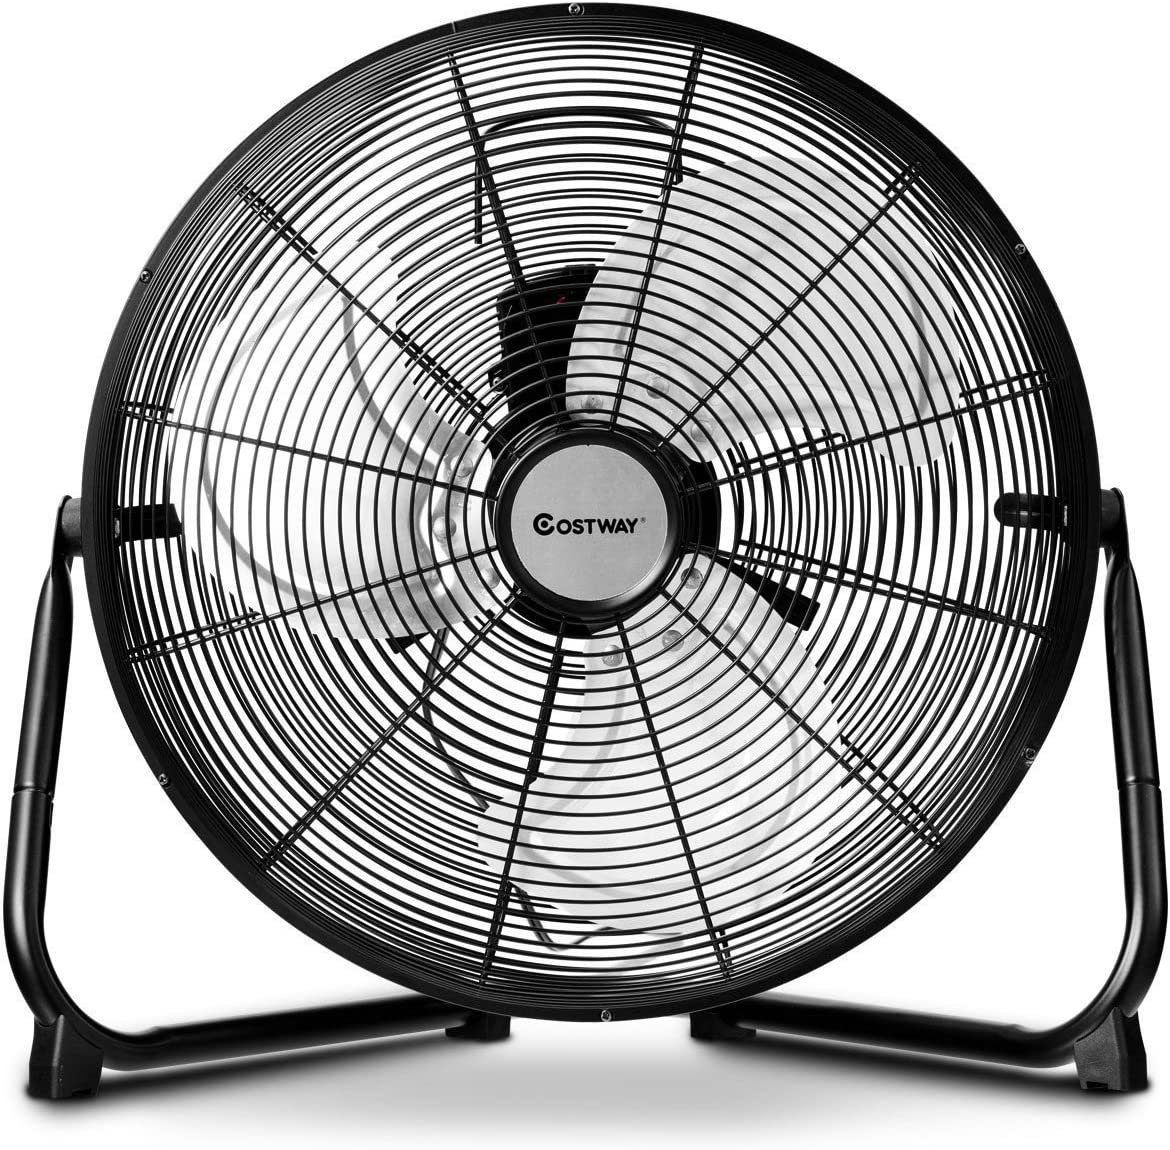 COSTWAY Floor Fan, 16-Inch w 360 Rotation, 3-Speed Adjustable, Commercial Industrial Grade, Metal, Heavy Duty Electric High Velocity Fan, Black